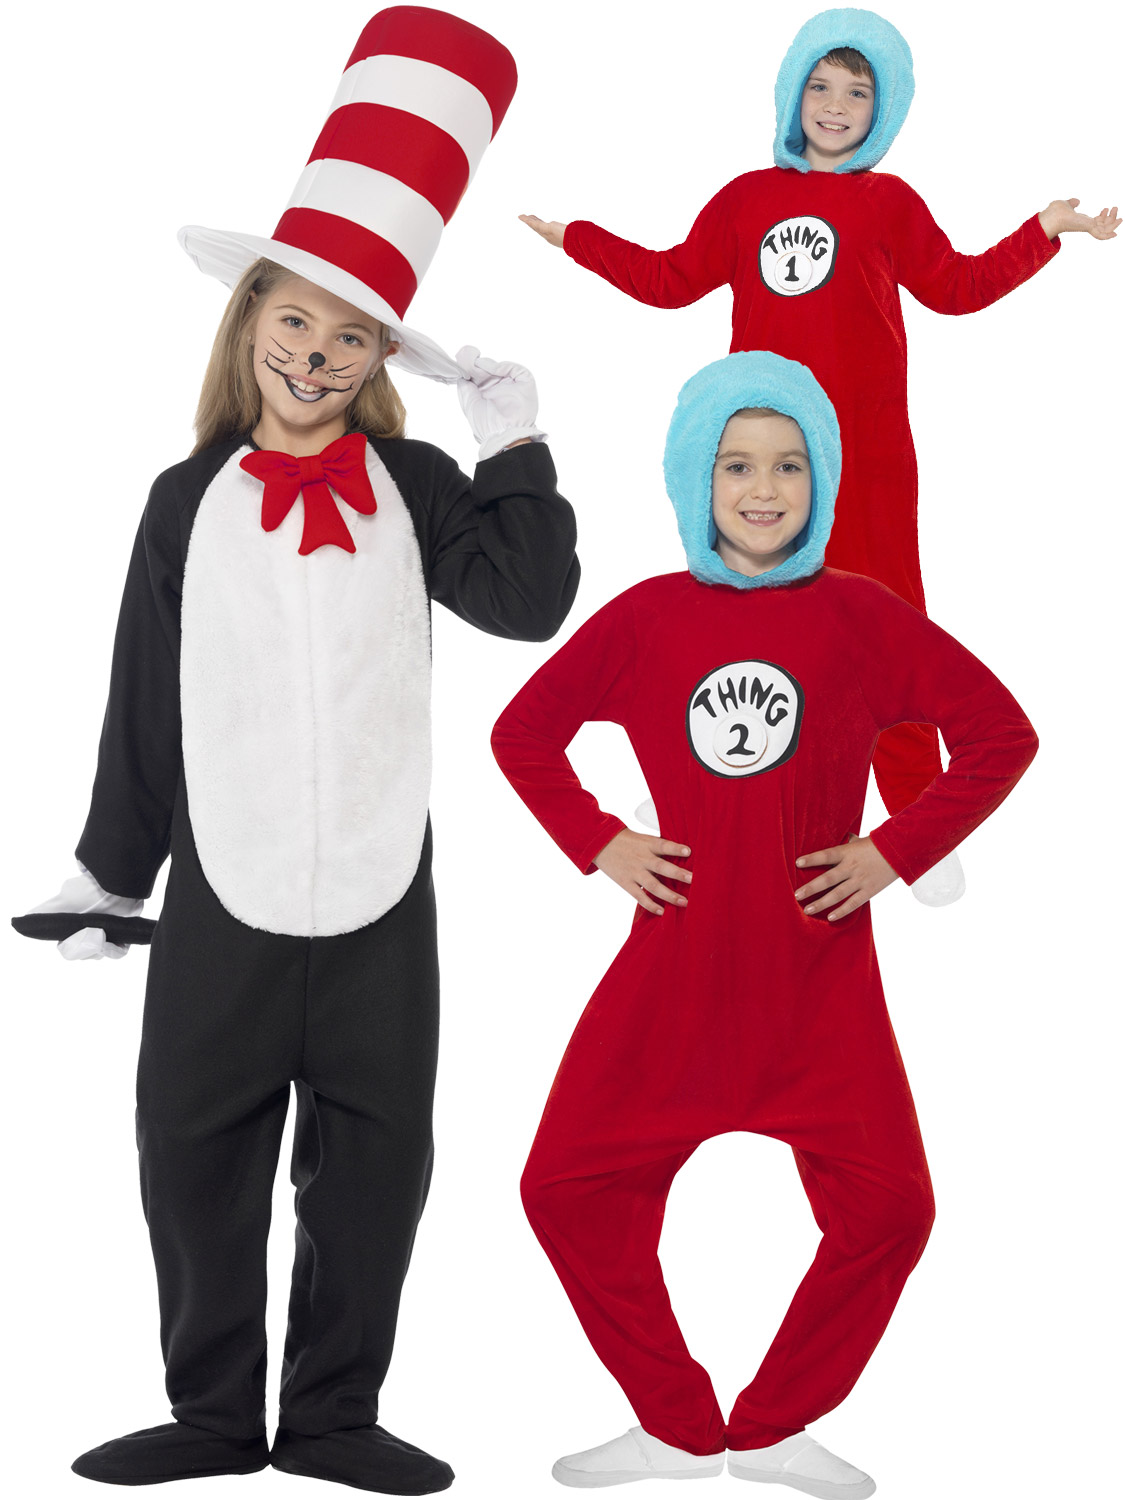 Details about Kids Cat in the Hat Costume Dr Seuss Thing 1 2 Girls Boys  Fancy Dress Book Week 6878390d4